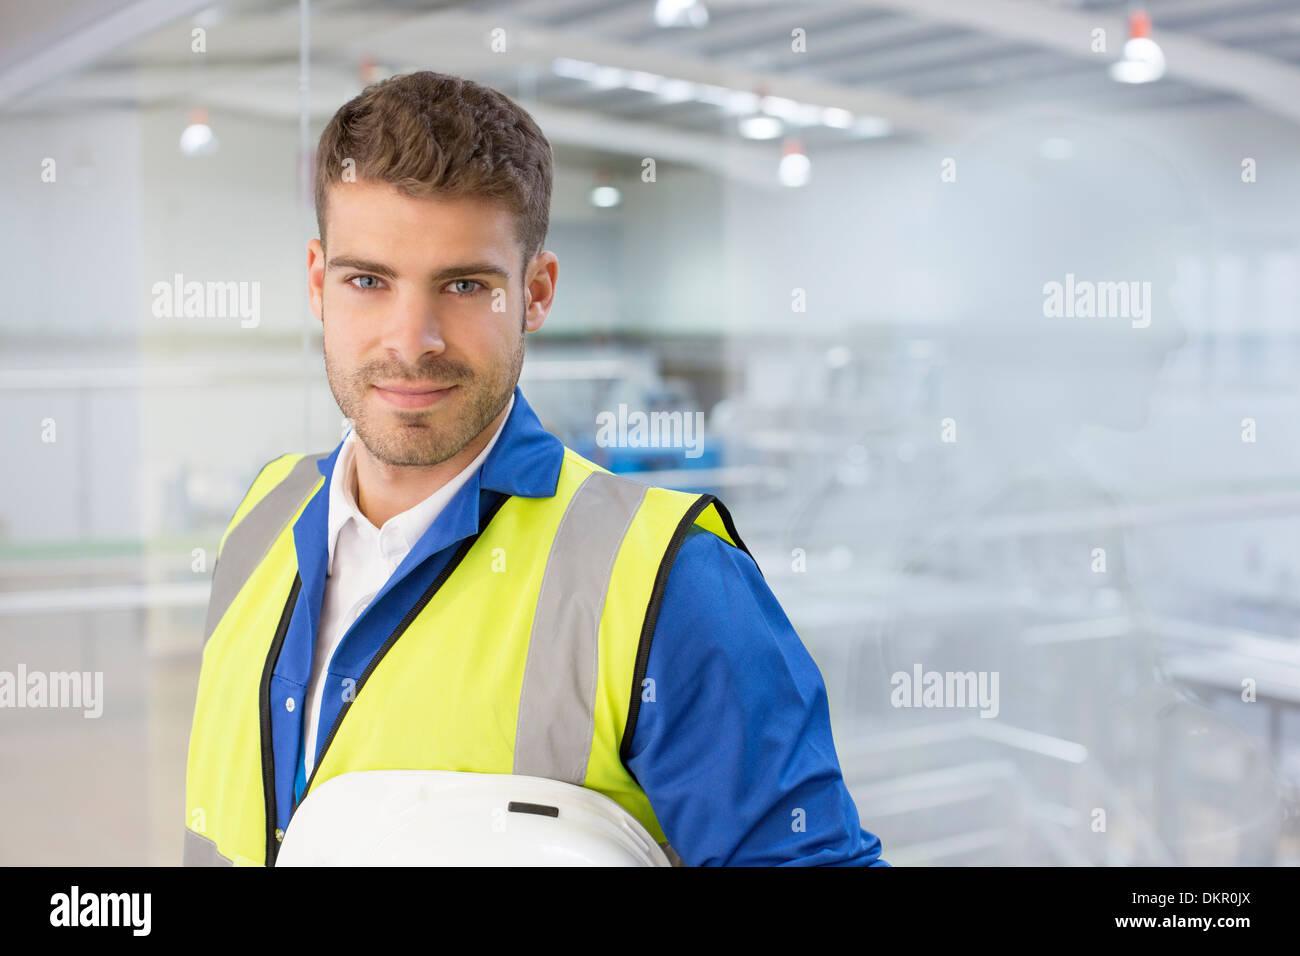 Worker smiling by window in factory Stock Photo